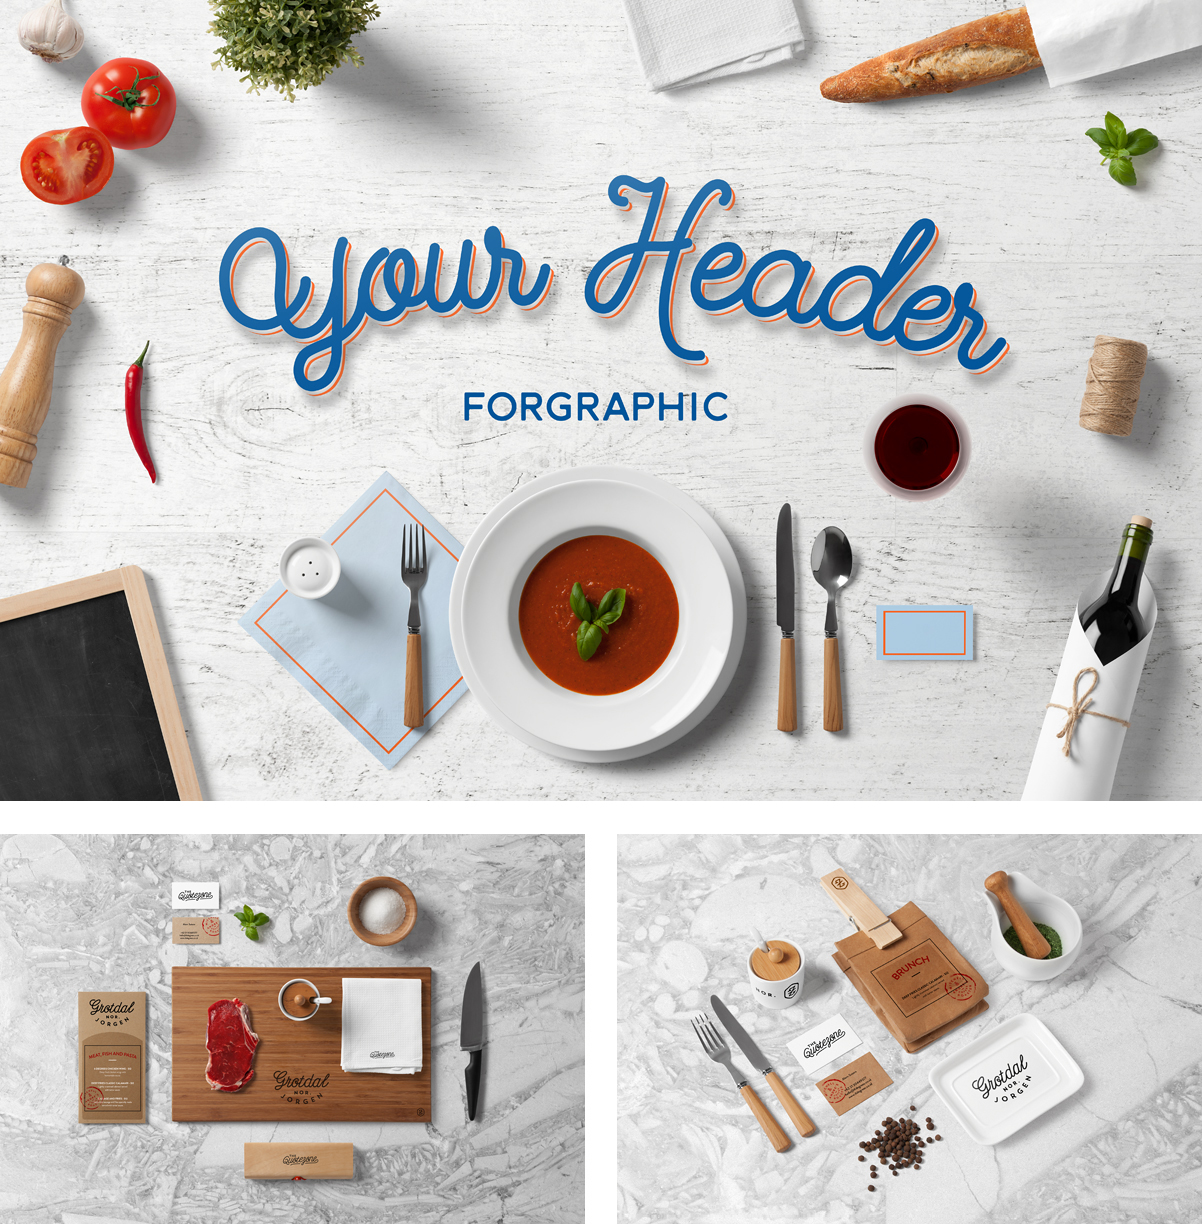 Restaurant Food Mock-Up | PSD Templates | forgraphic™